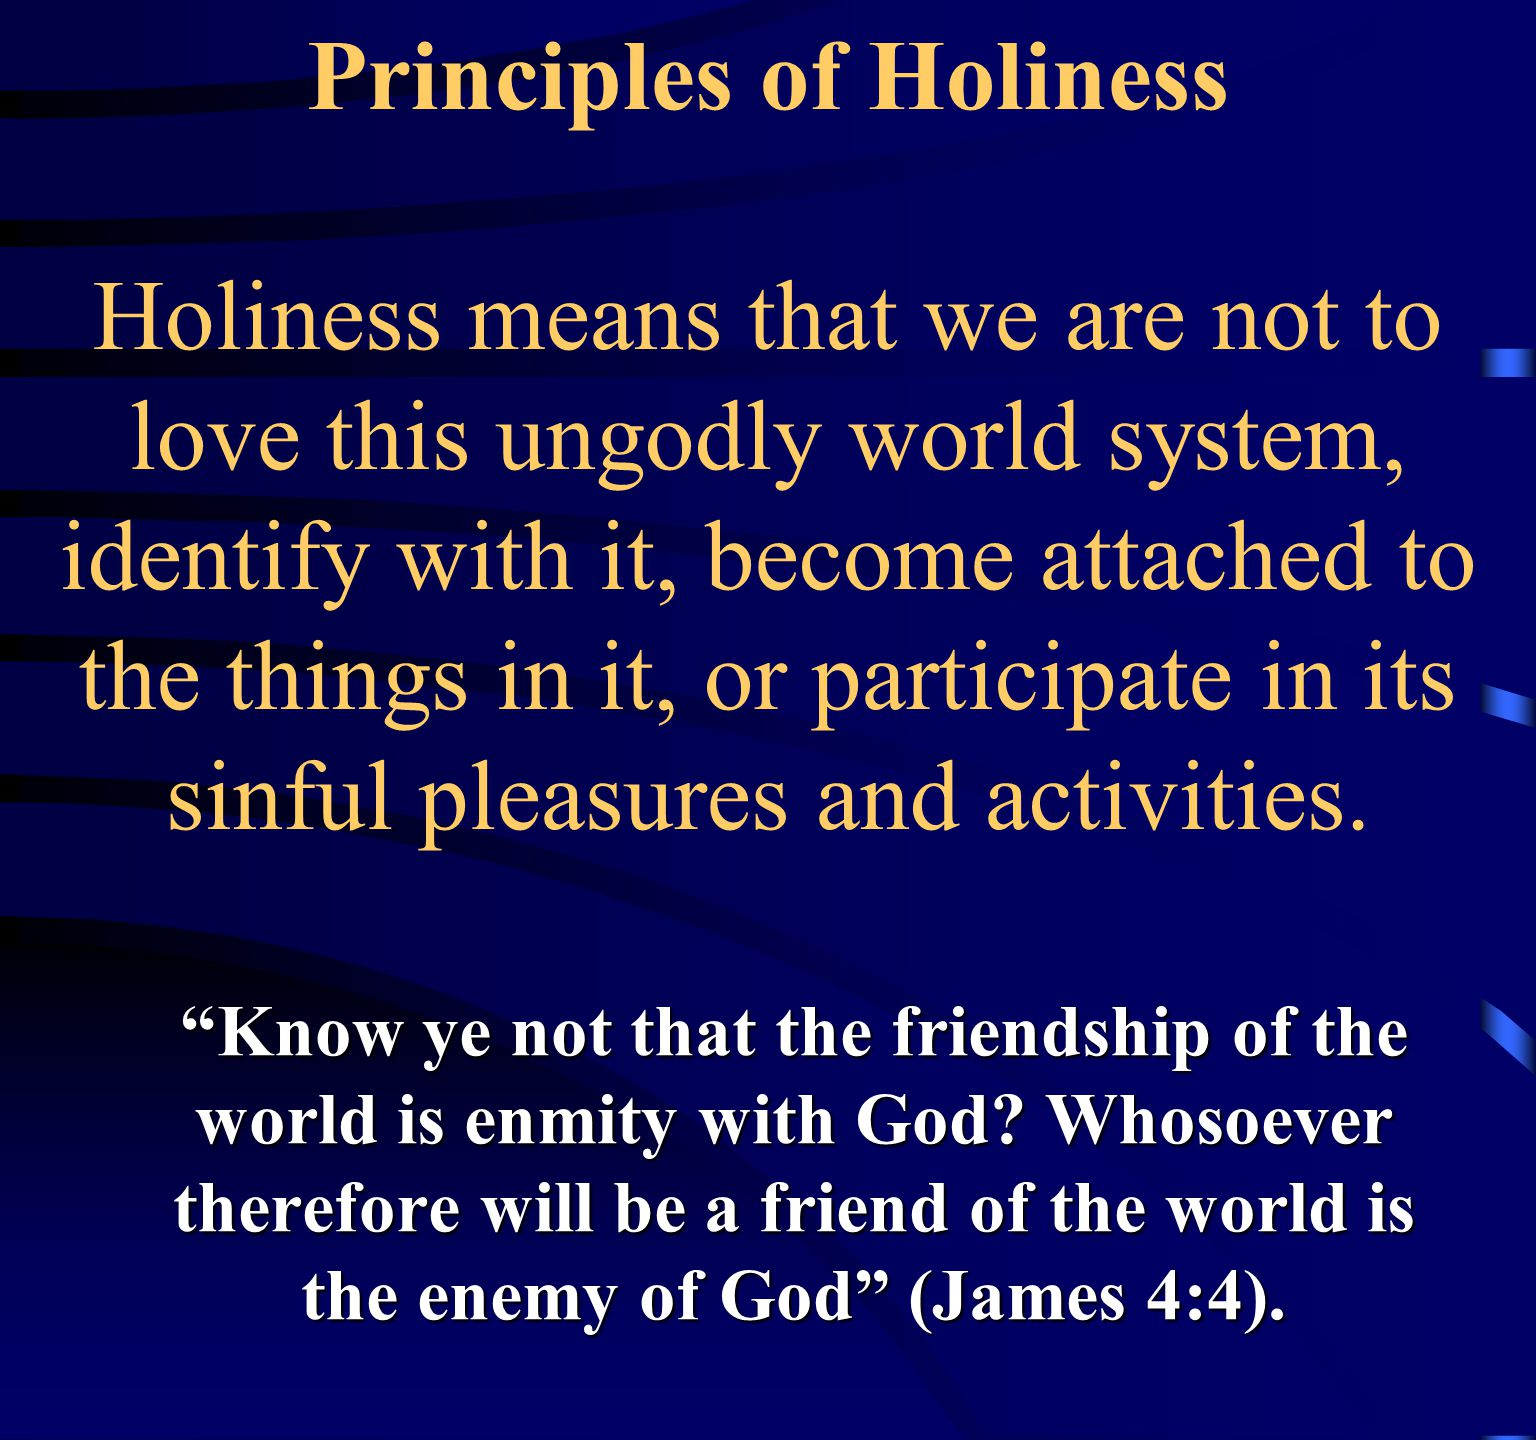 Principles of Holiness Holiness means that we are not to love this ungodly world system, identify with it, become attached to the things in it, or participate in its sinful pleasures and activities.